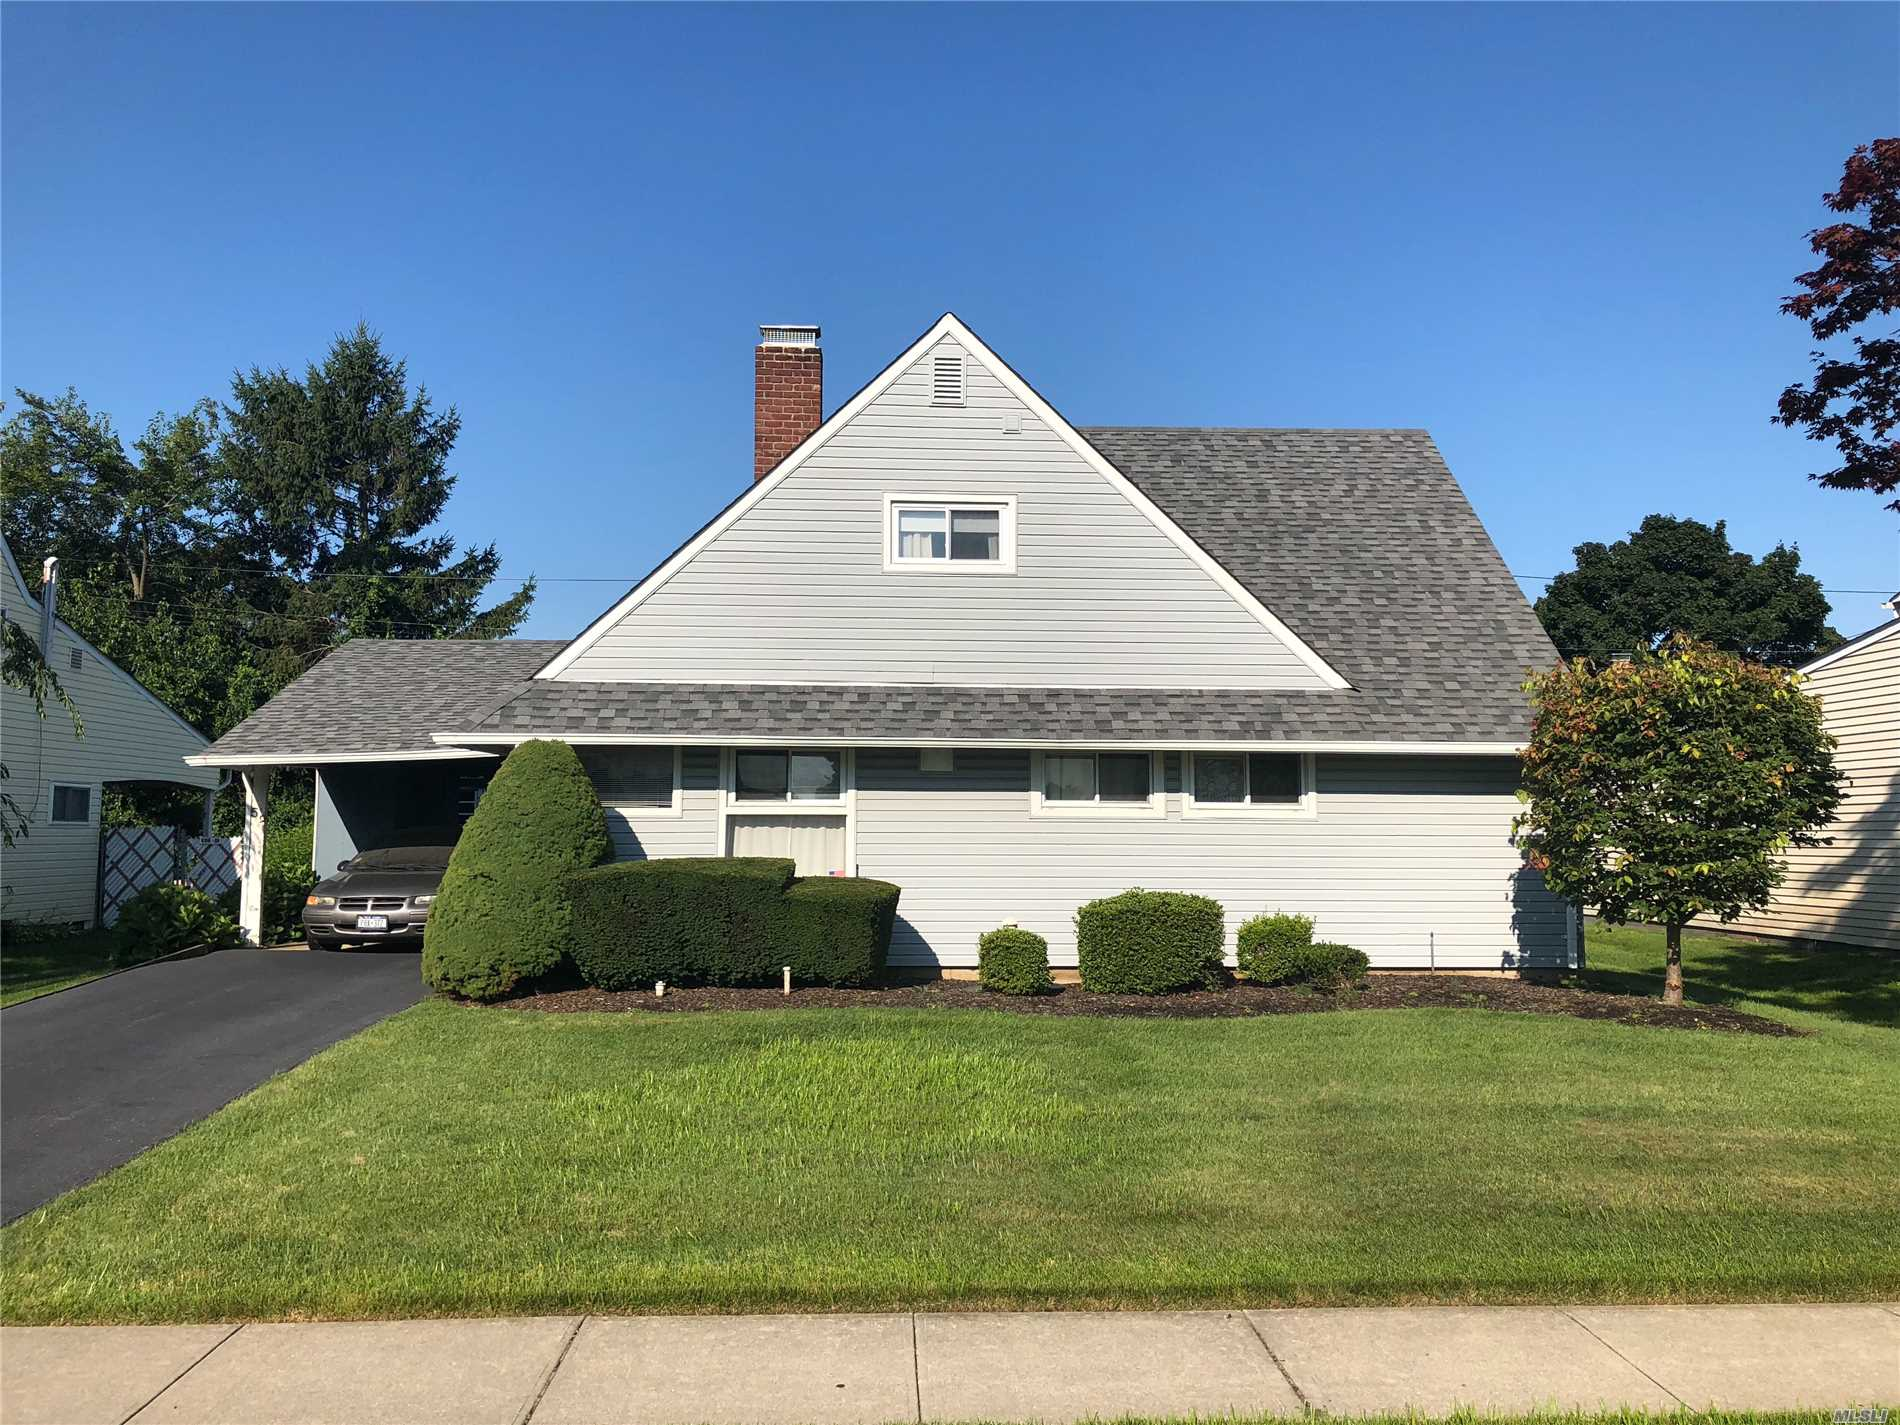 Great Mid Block Location For A Four Bedroom, 1.5 Bath Levitt Ranch In The A Section Of Hicksville. Updated 150 Amp Electric, Updated Boiler, Large Shed, Great Yard And Deck.